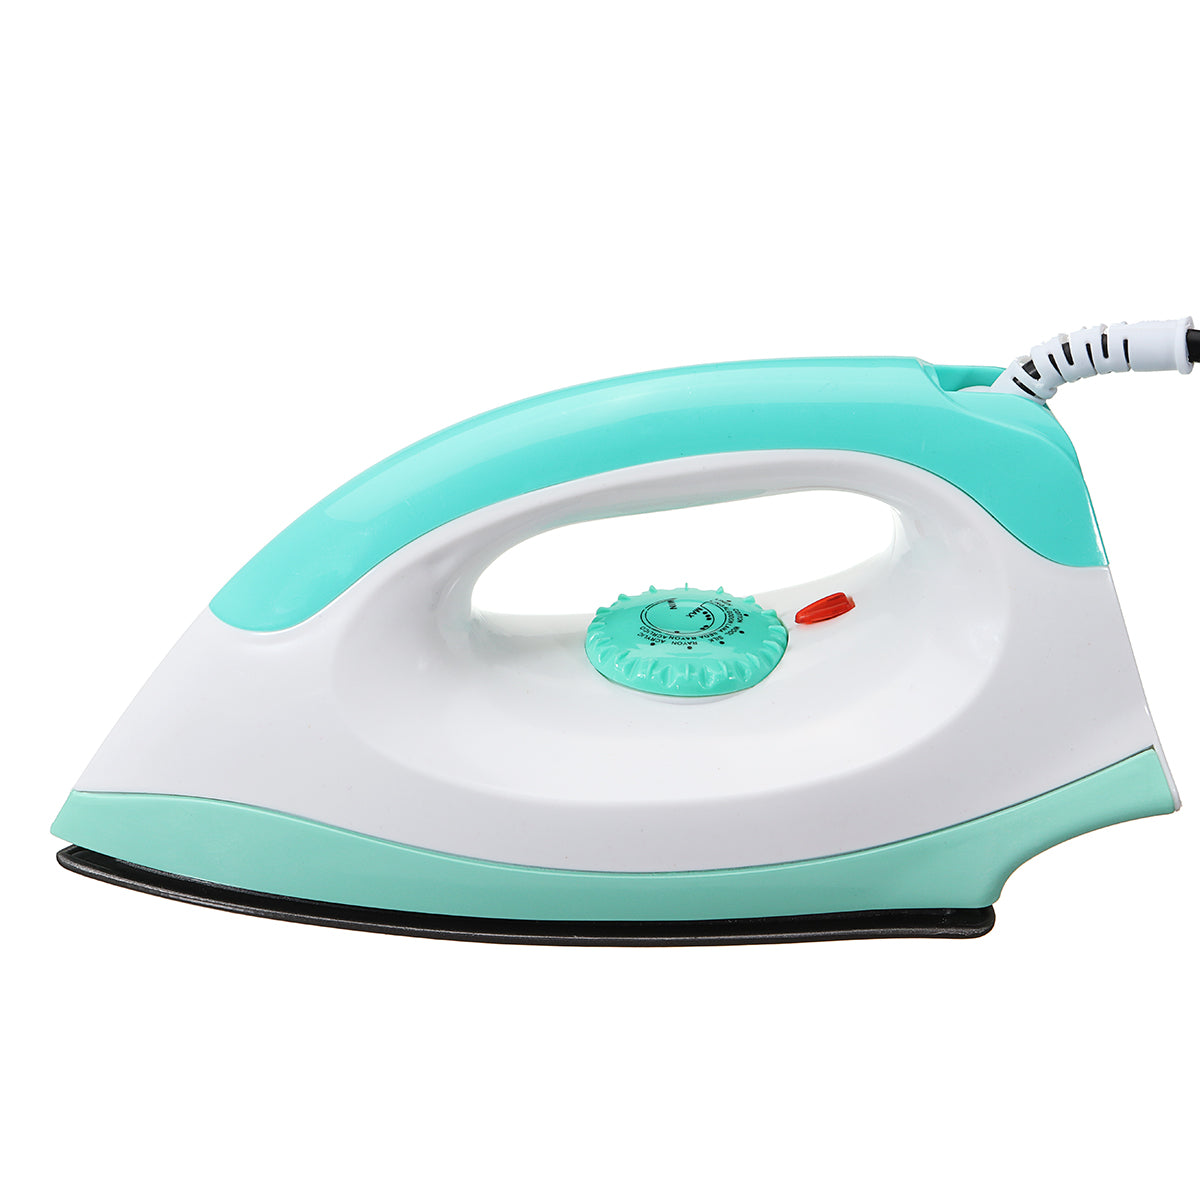 150W DC12V Mini Electric Iron Portable Clothes Dry Handheld Steamer Steam Irons Travel Equipment